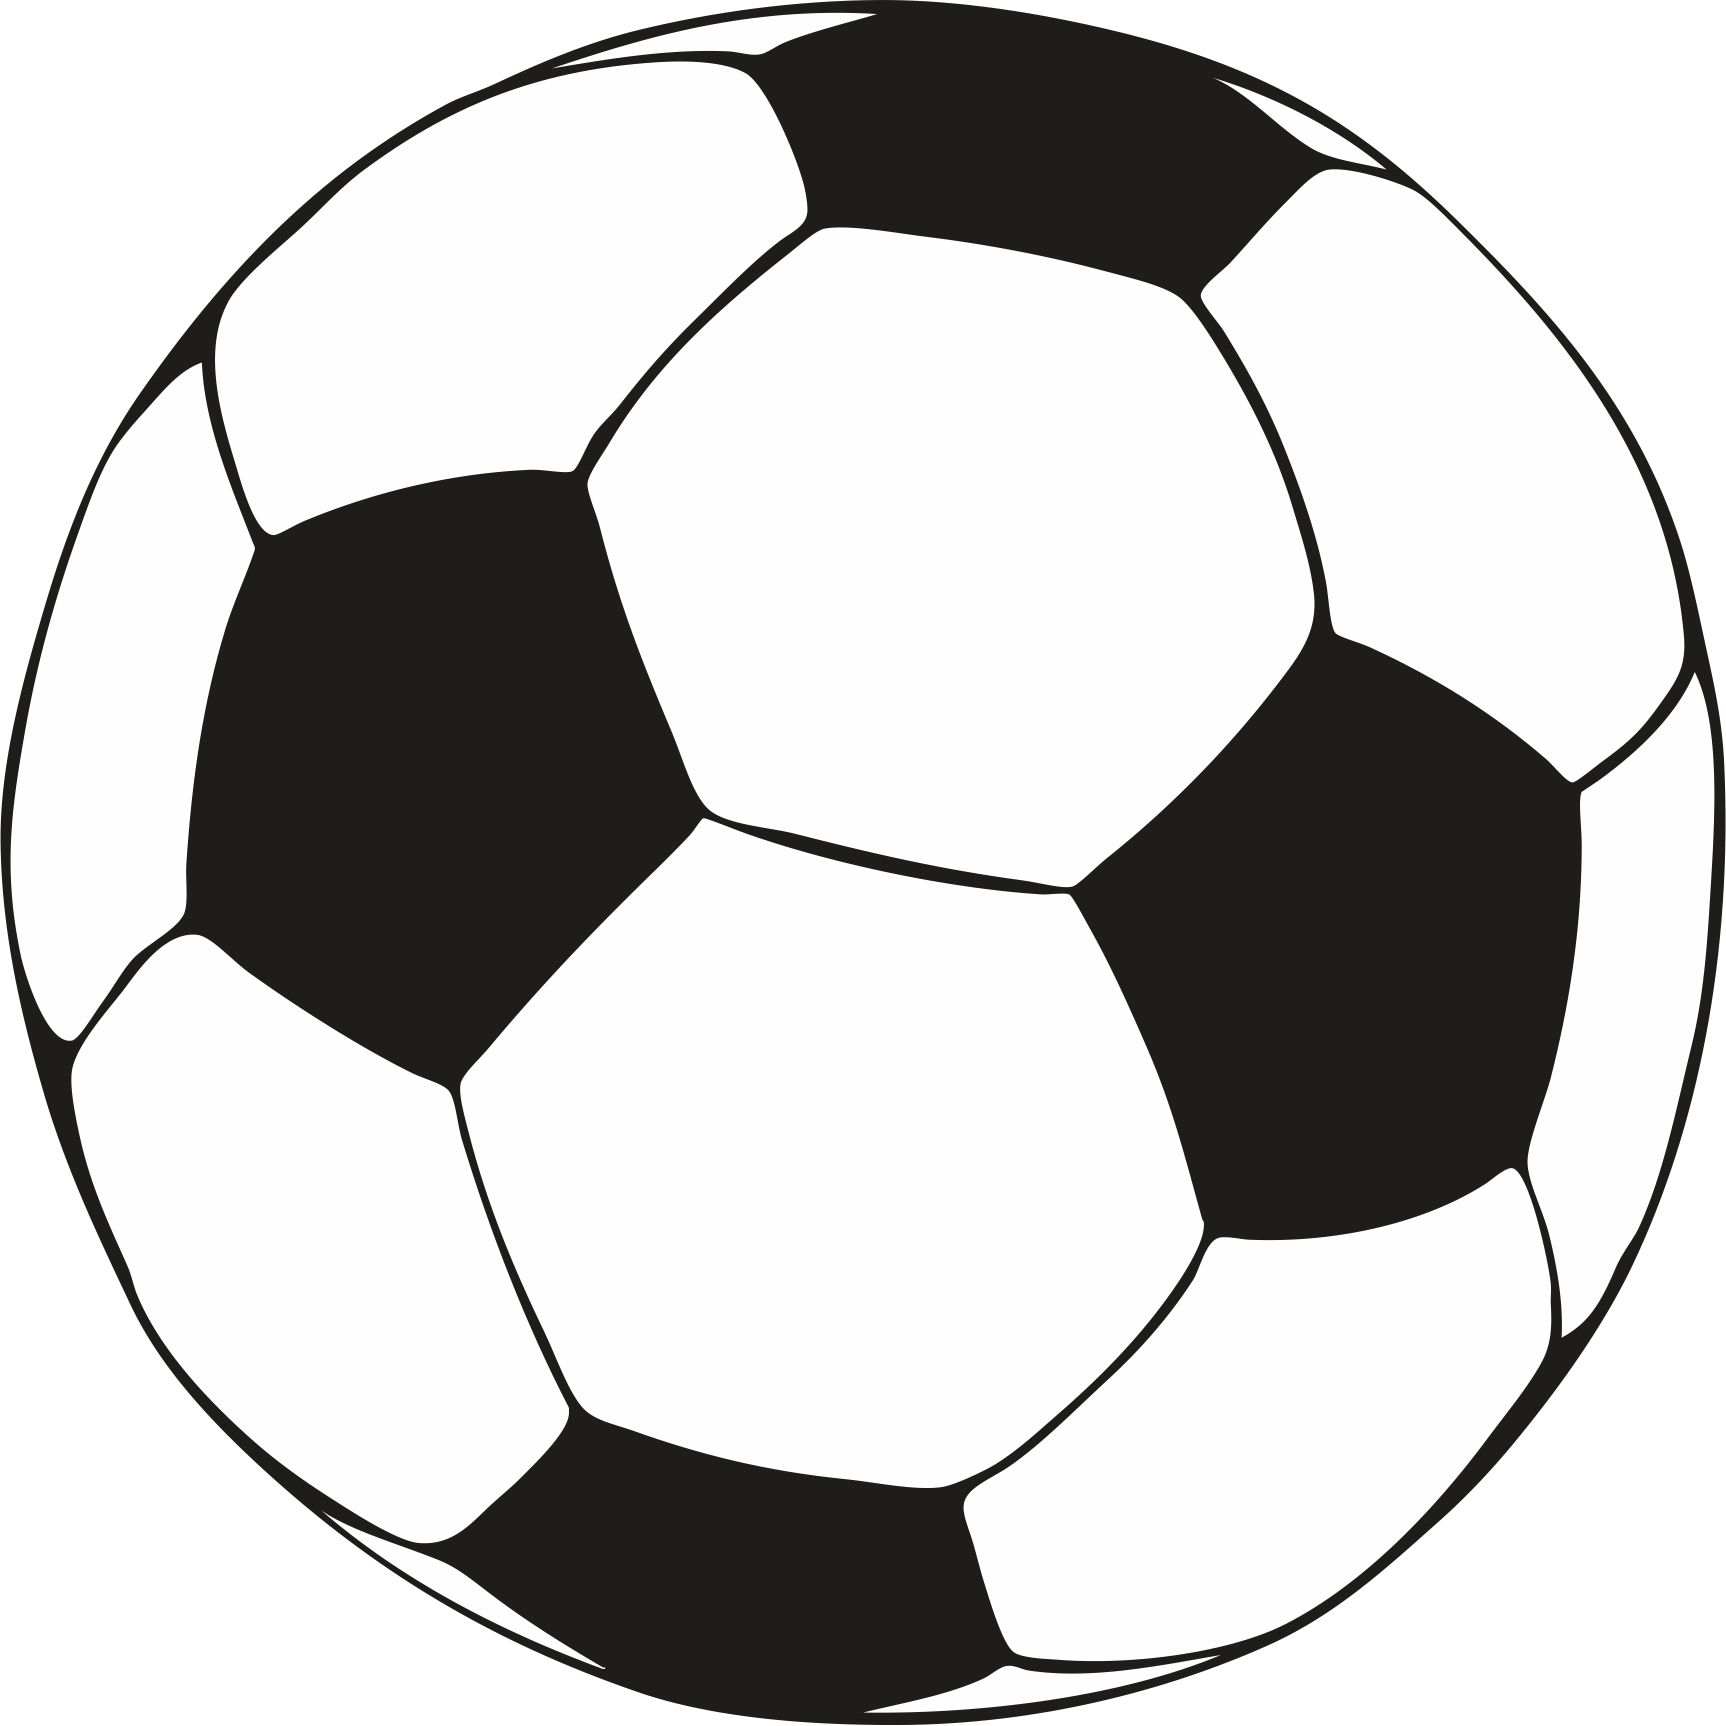 soccer balls coloring pages Soccer ball coloring pages download and print for free | Clip Art  soccer balls coloring pages